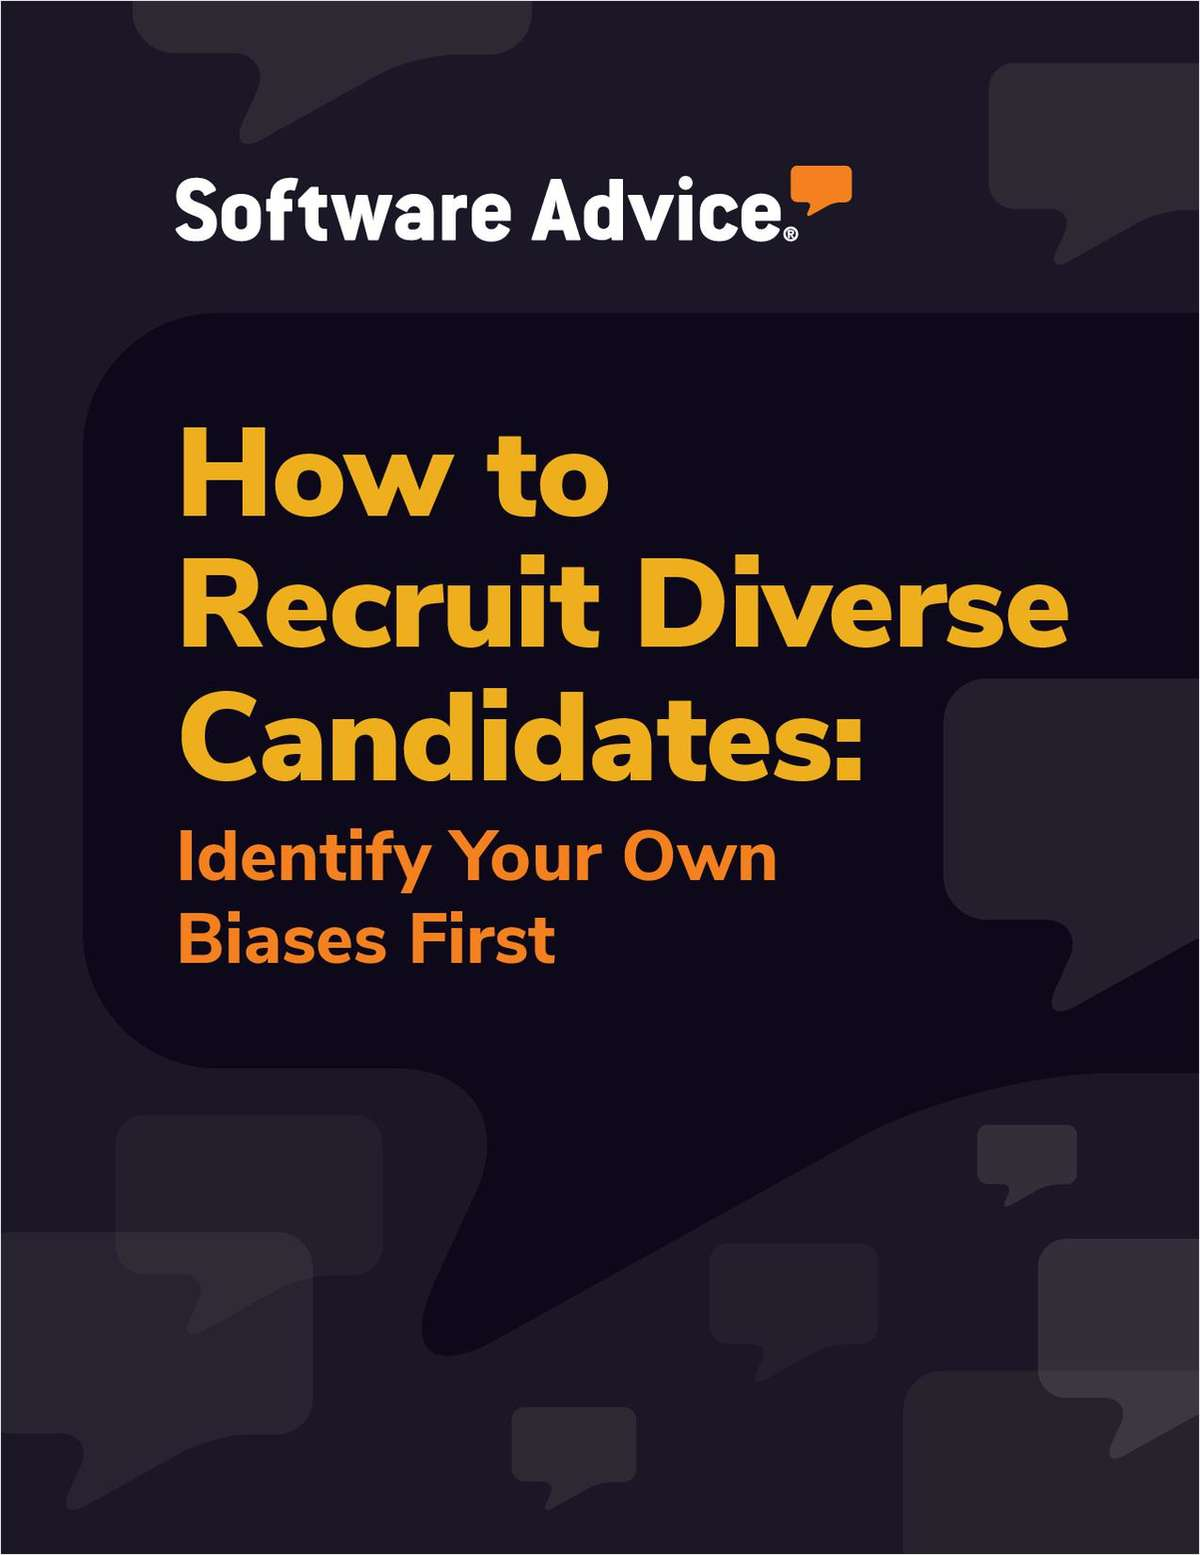 How to Recruit Diverse Candidates: Identify Your Own Biases First